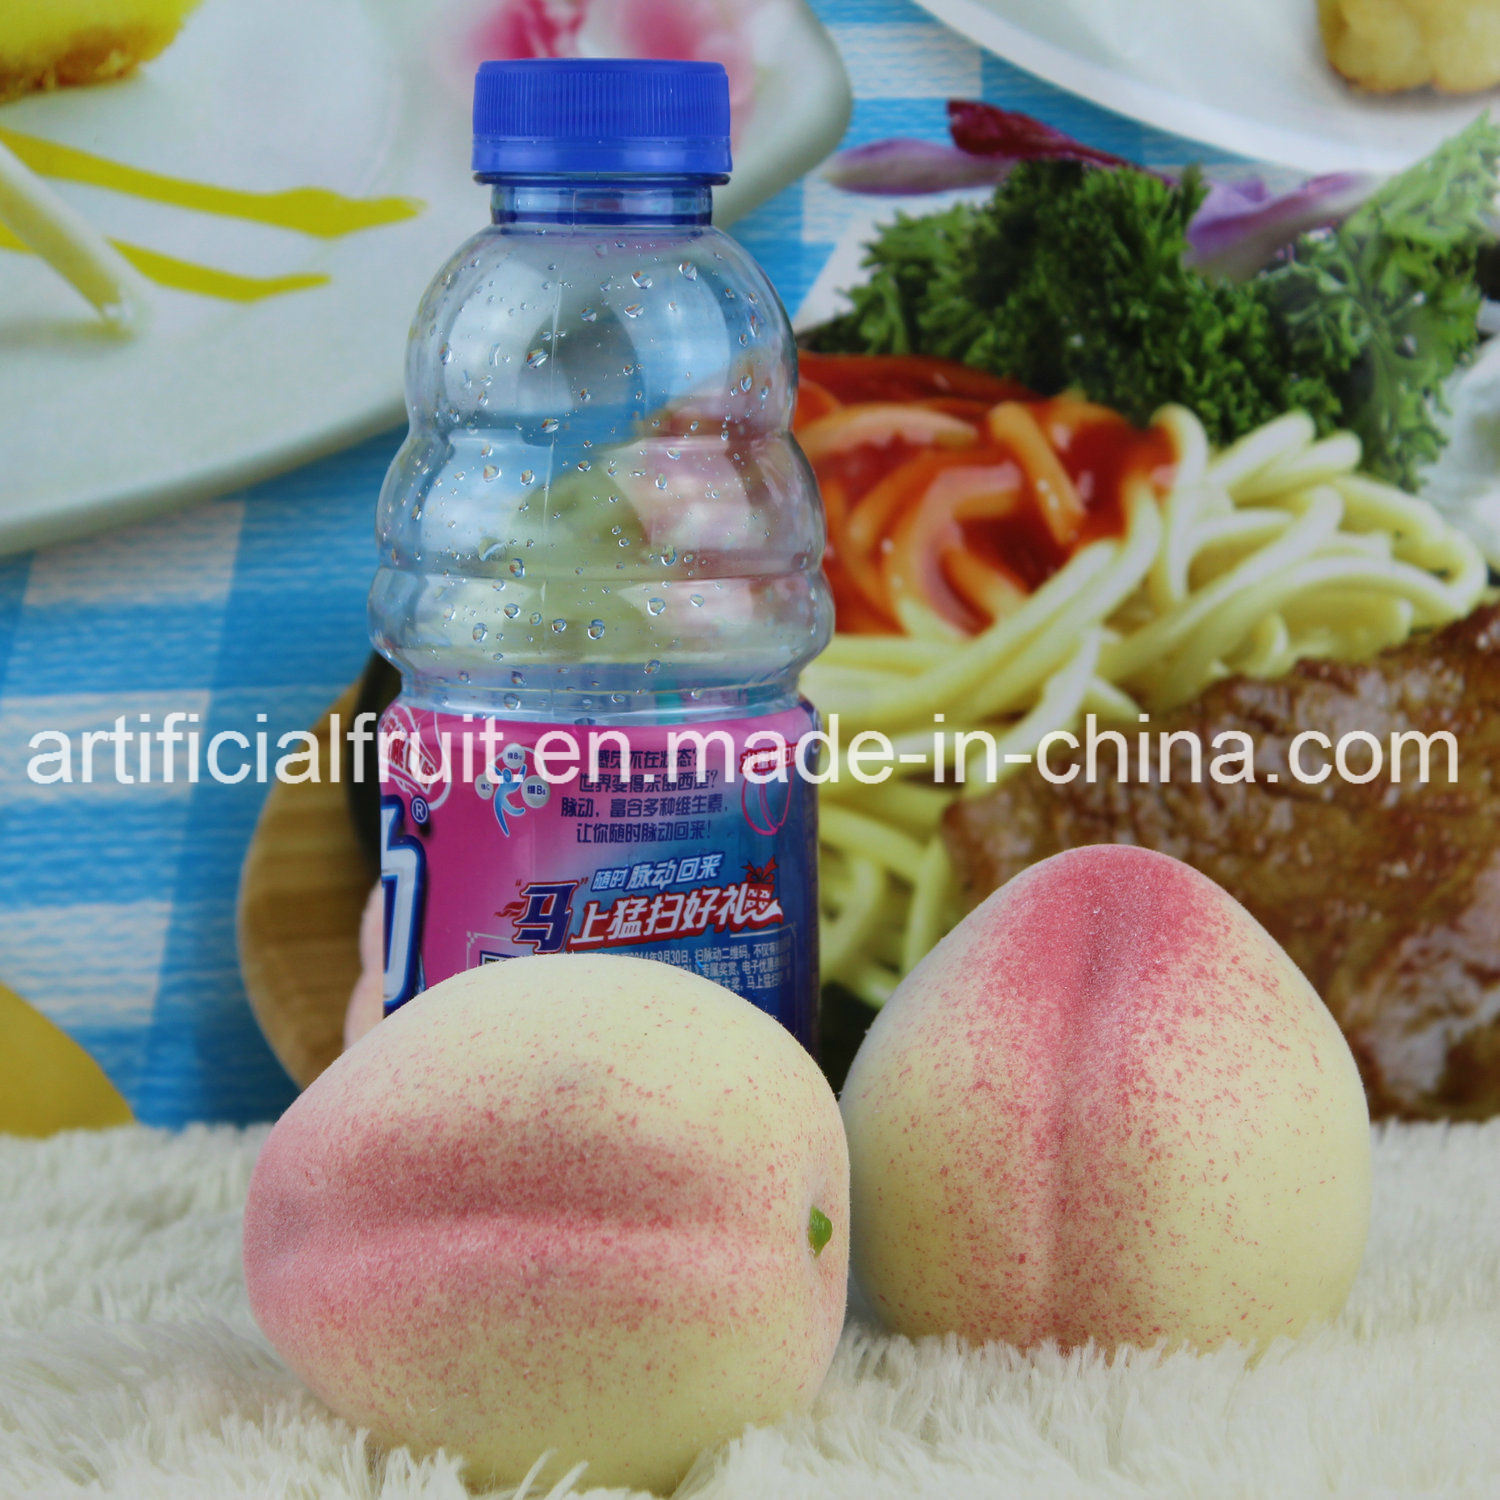 Decoration Wholesale Artificial Plastic Fake Dried Fruit